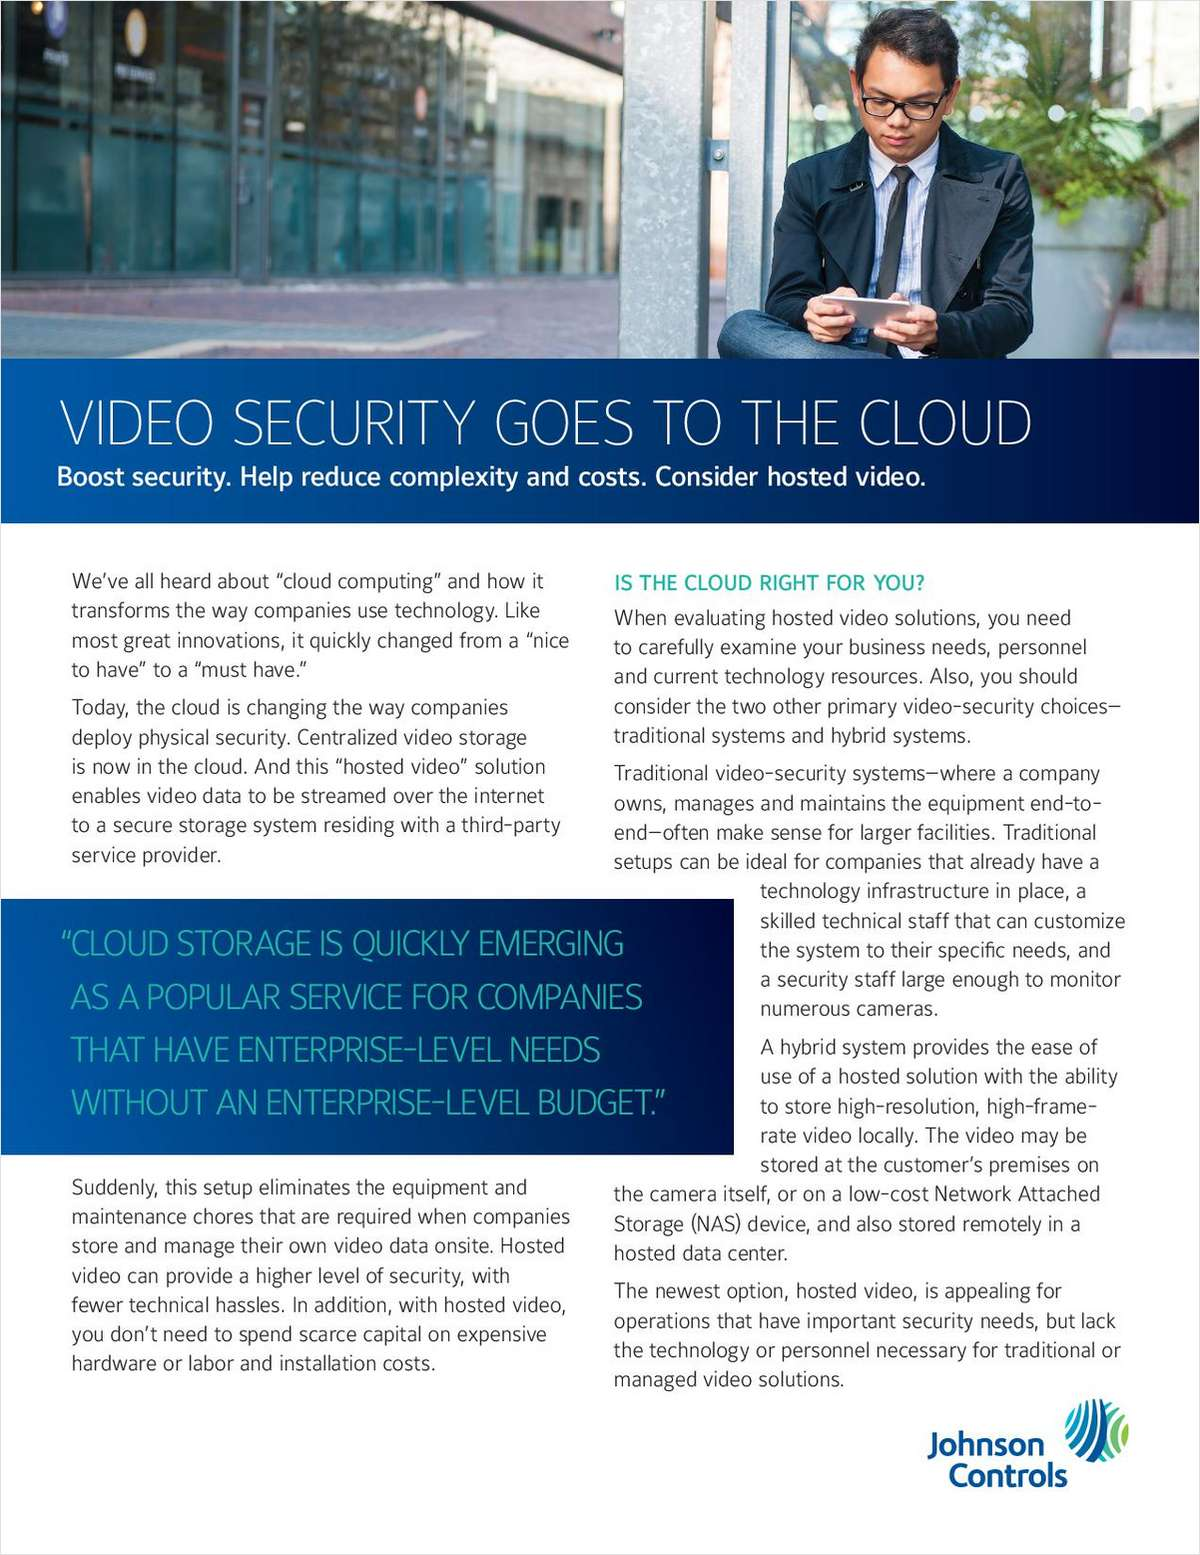 Get a First-Hand Look at Cloud Video in Action